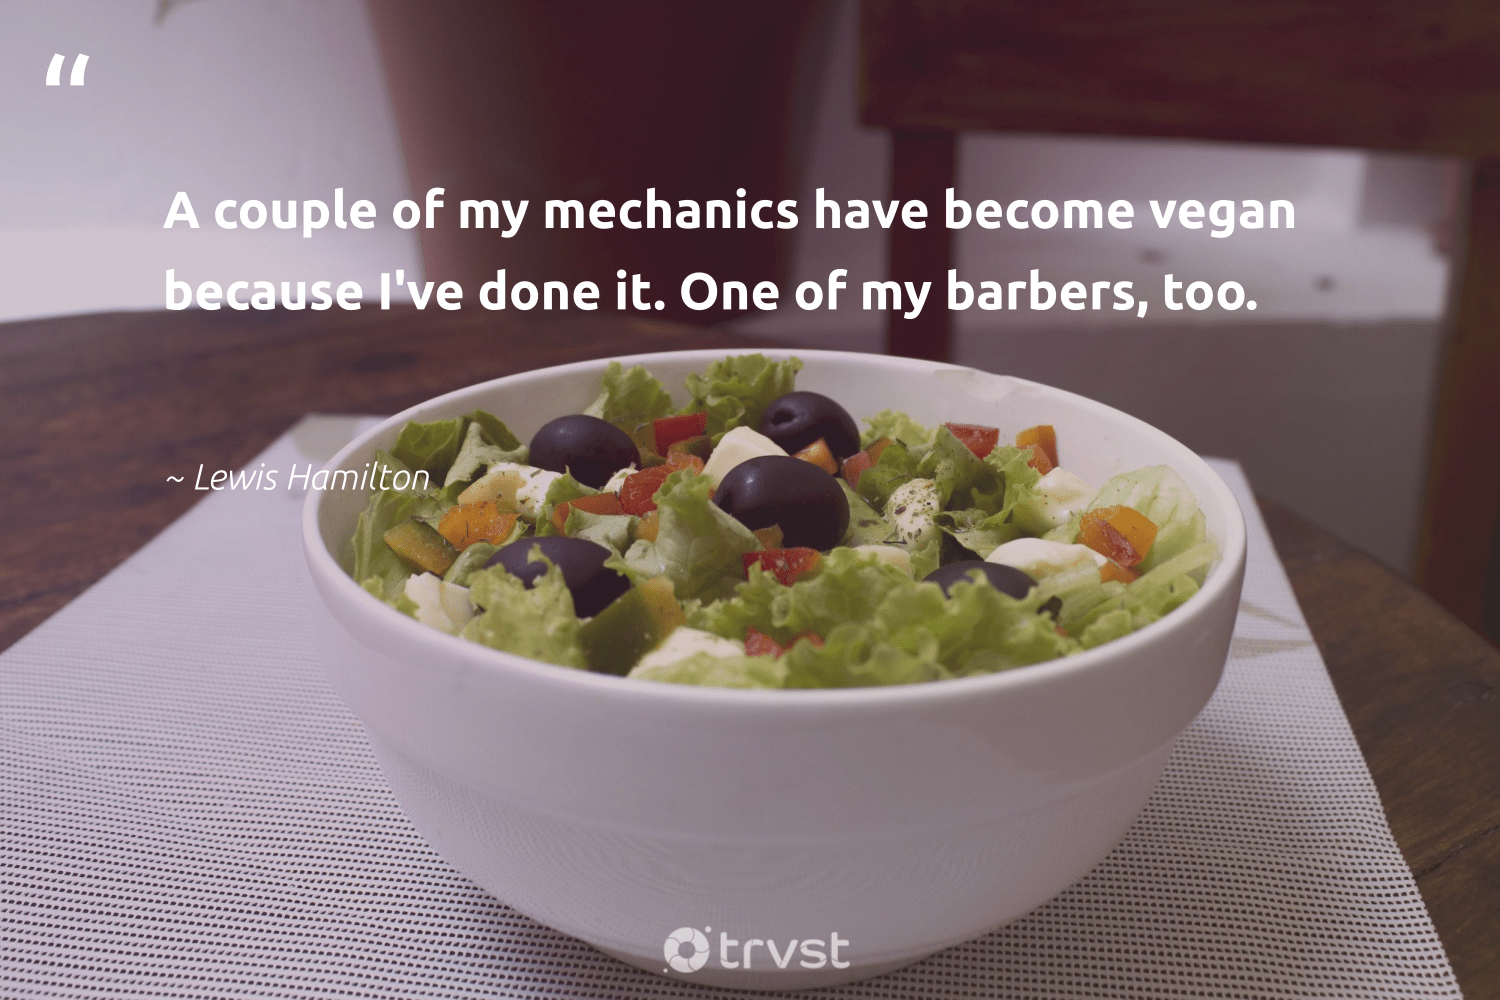 """A couple of my mechanics have become vegan because I've done it. One of my barbers, too.""  - Lewis Hamilton #trvst #quotes #vegan #veganfood #fashion #green #collectiveaction #veganlife #greenliving #gogreen #beinspired #veganfoodshare"